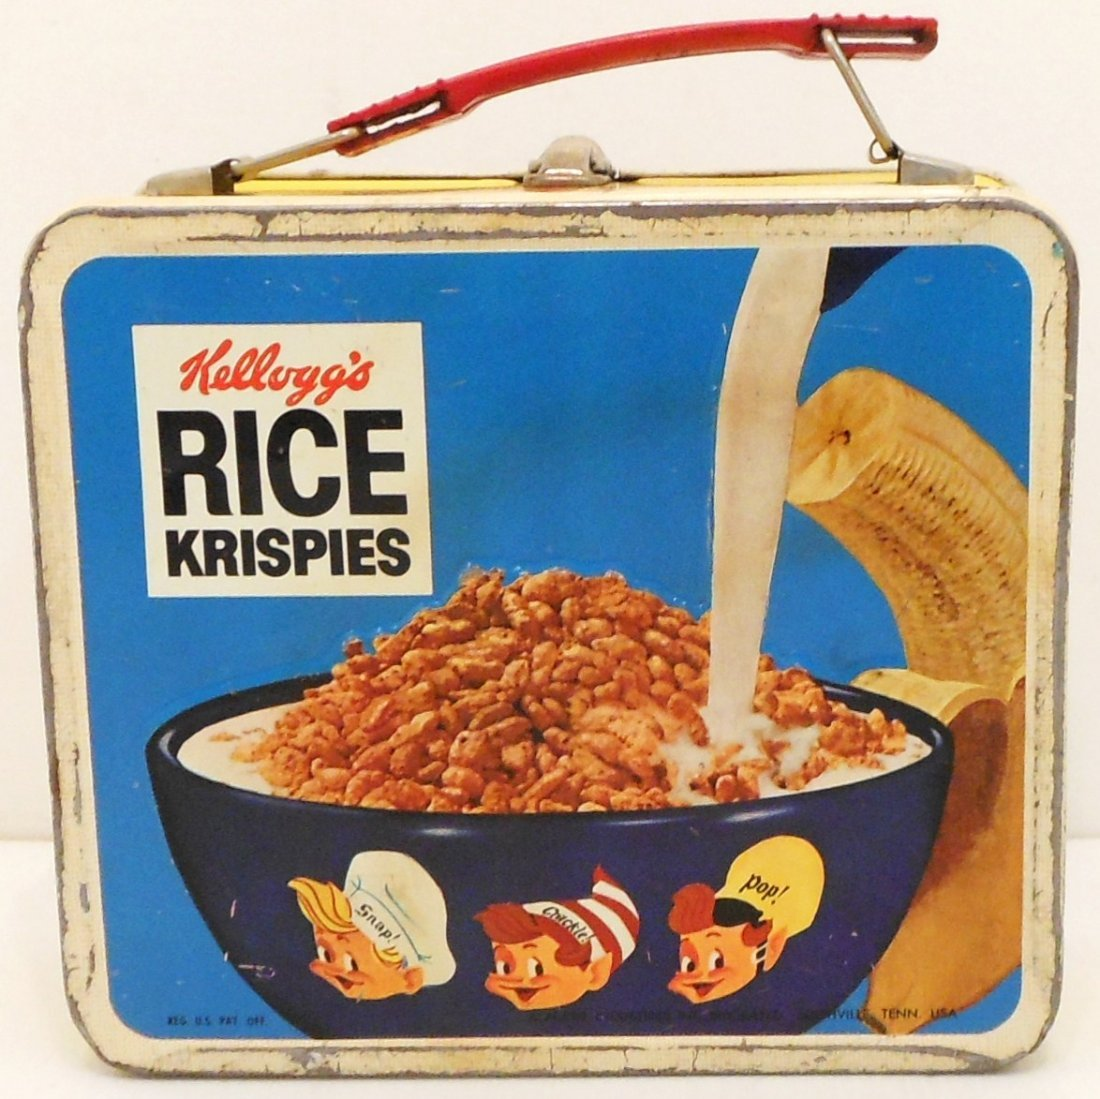 Vintage Kellogg's Cereals Lunch Box Thermos - 10